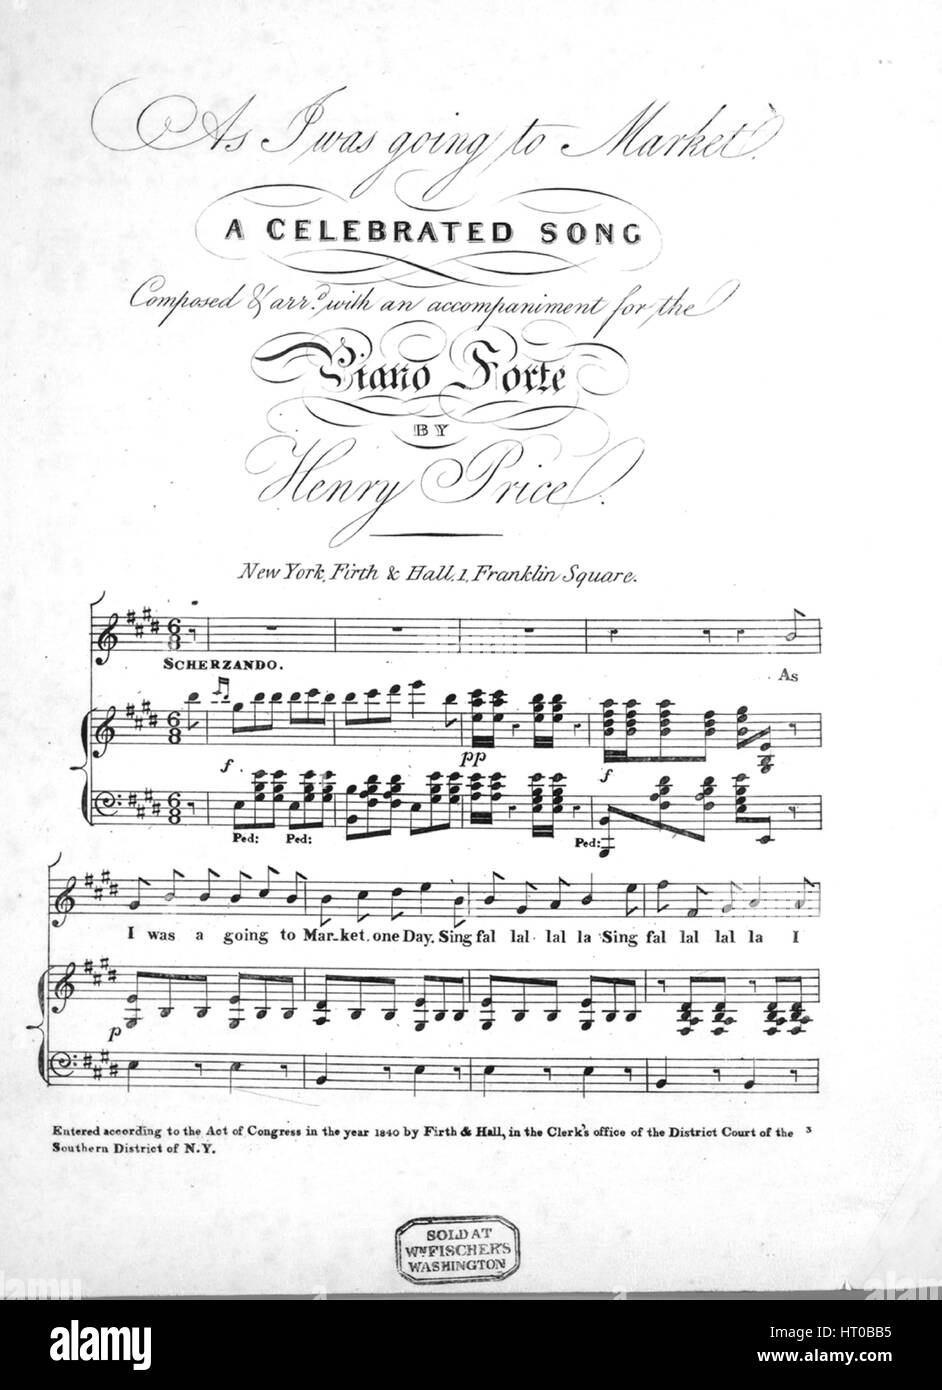 sheet music cover image of the song as i was going to market a celebrated song with original authorship notes reading composed and arrd with an